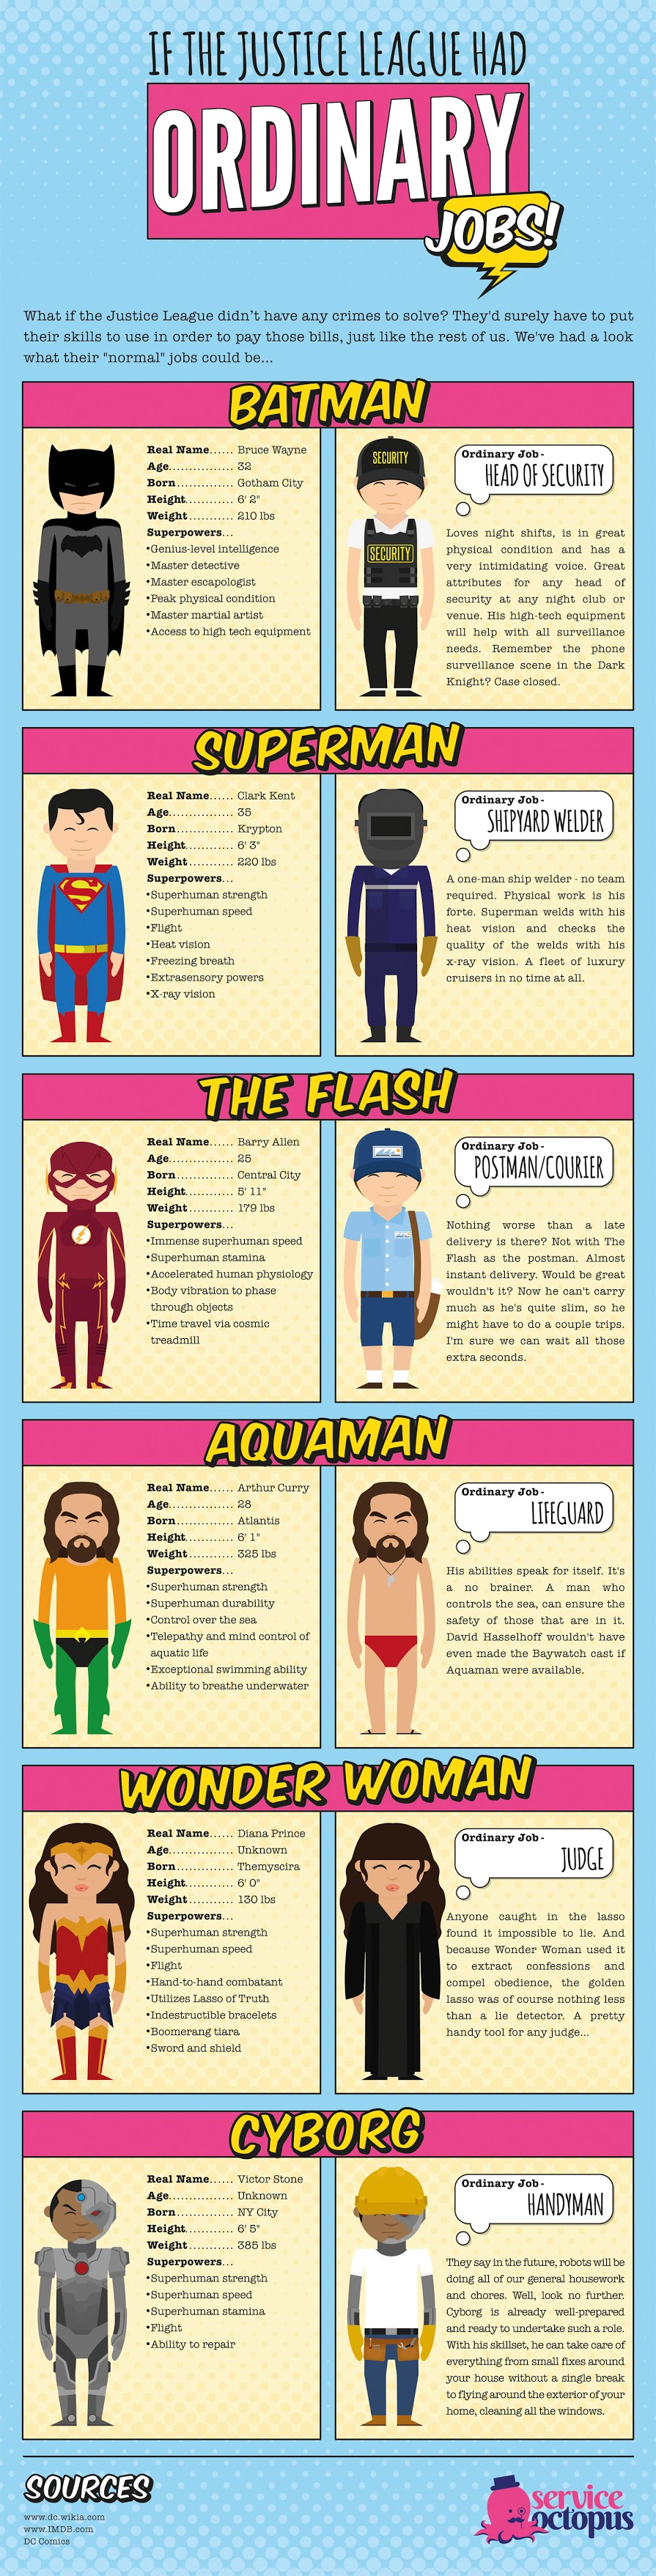 If The Justice League Had Ordinary Jobs